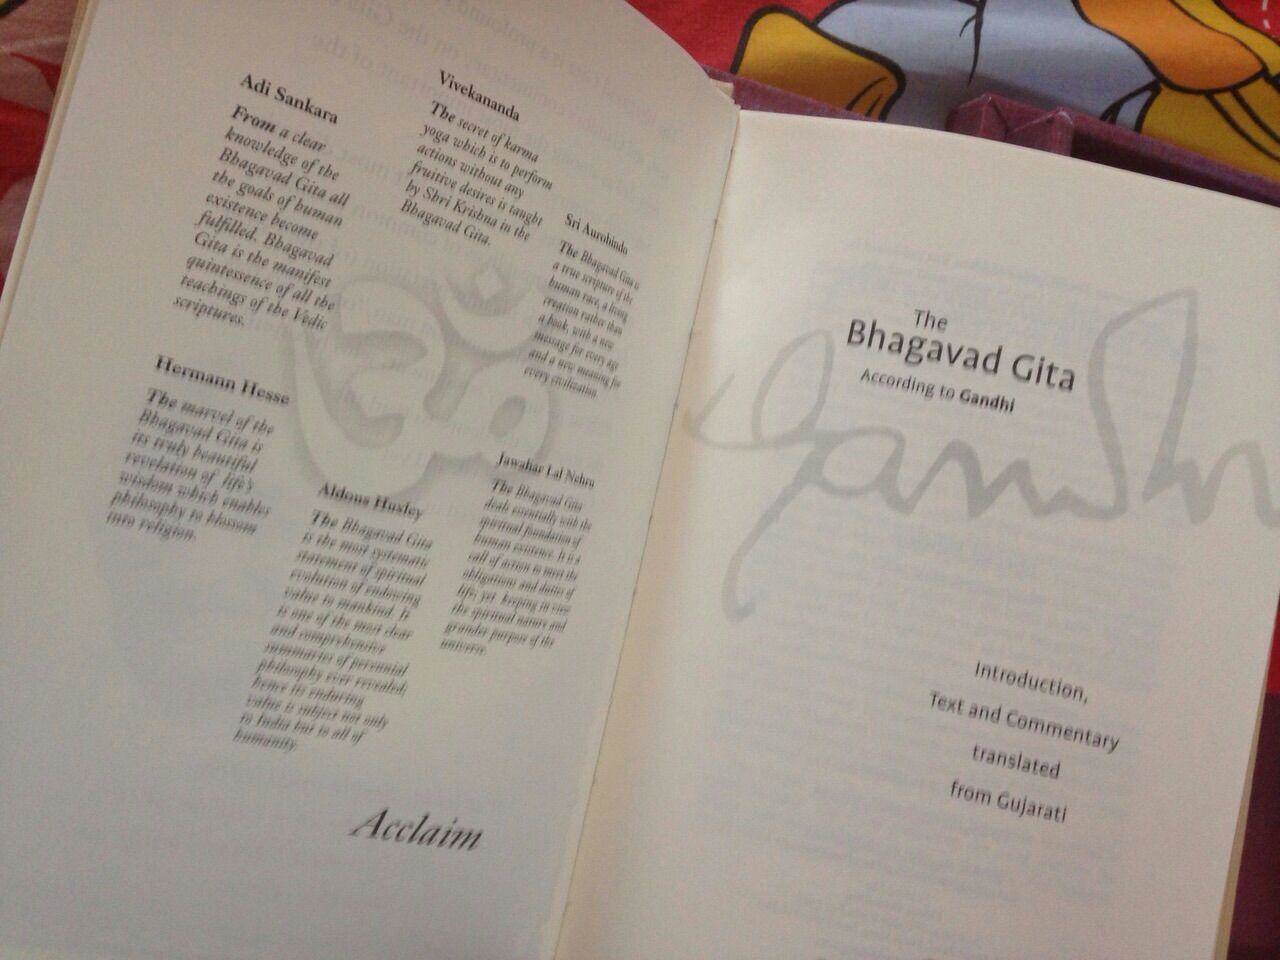 Avantika-printed Bhagwad Gita presented to President Obama